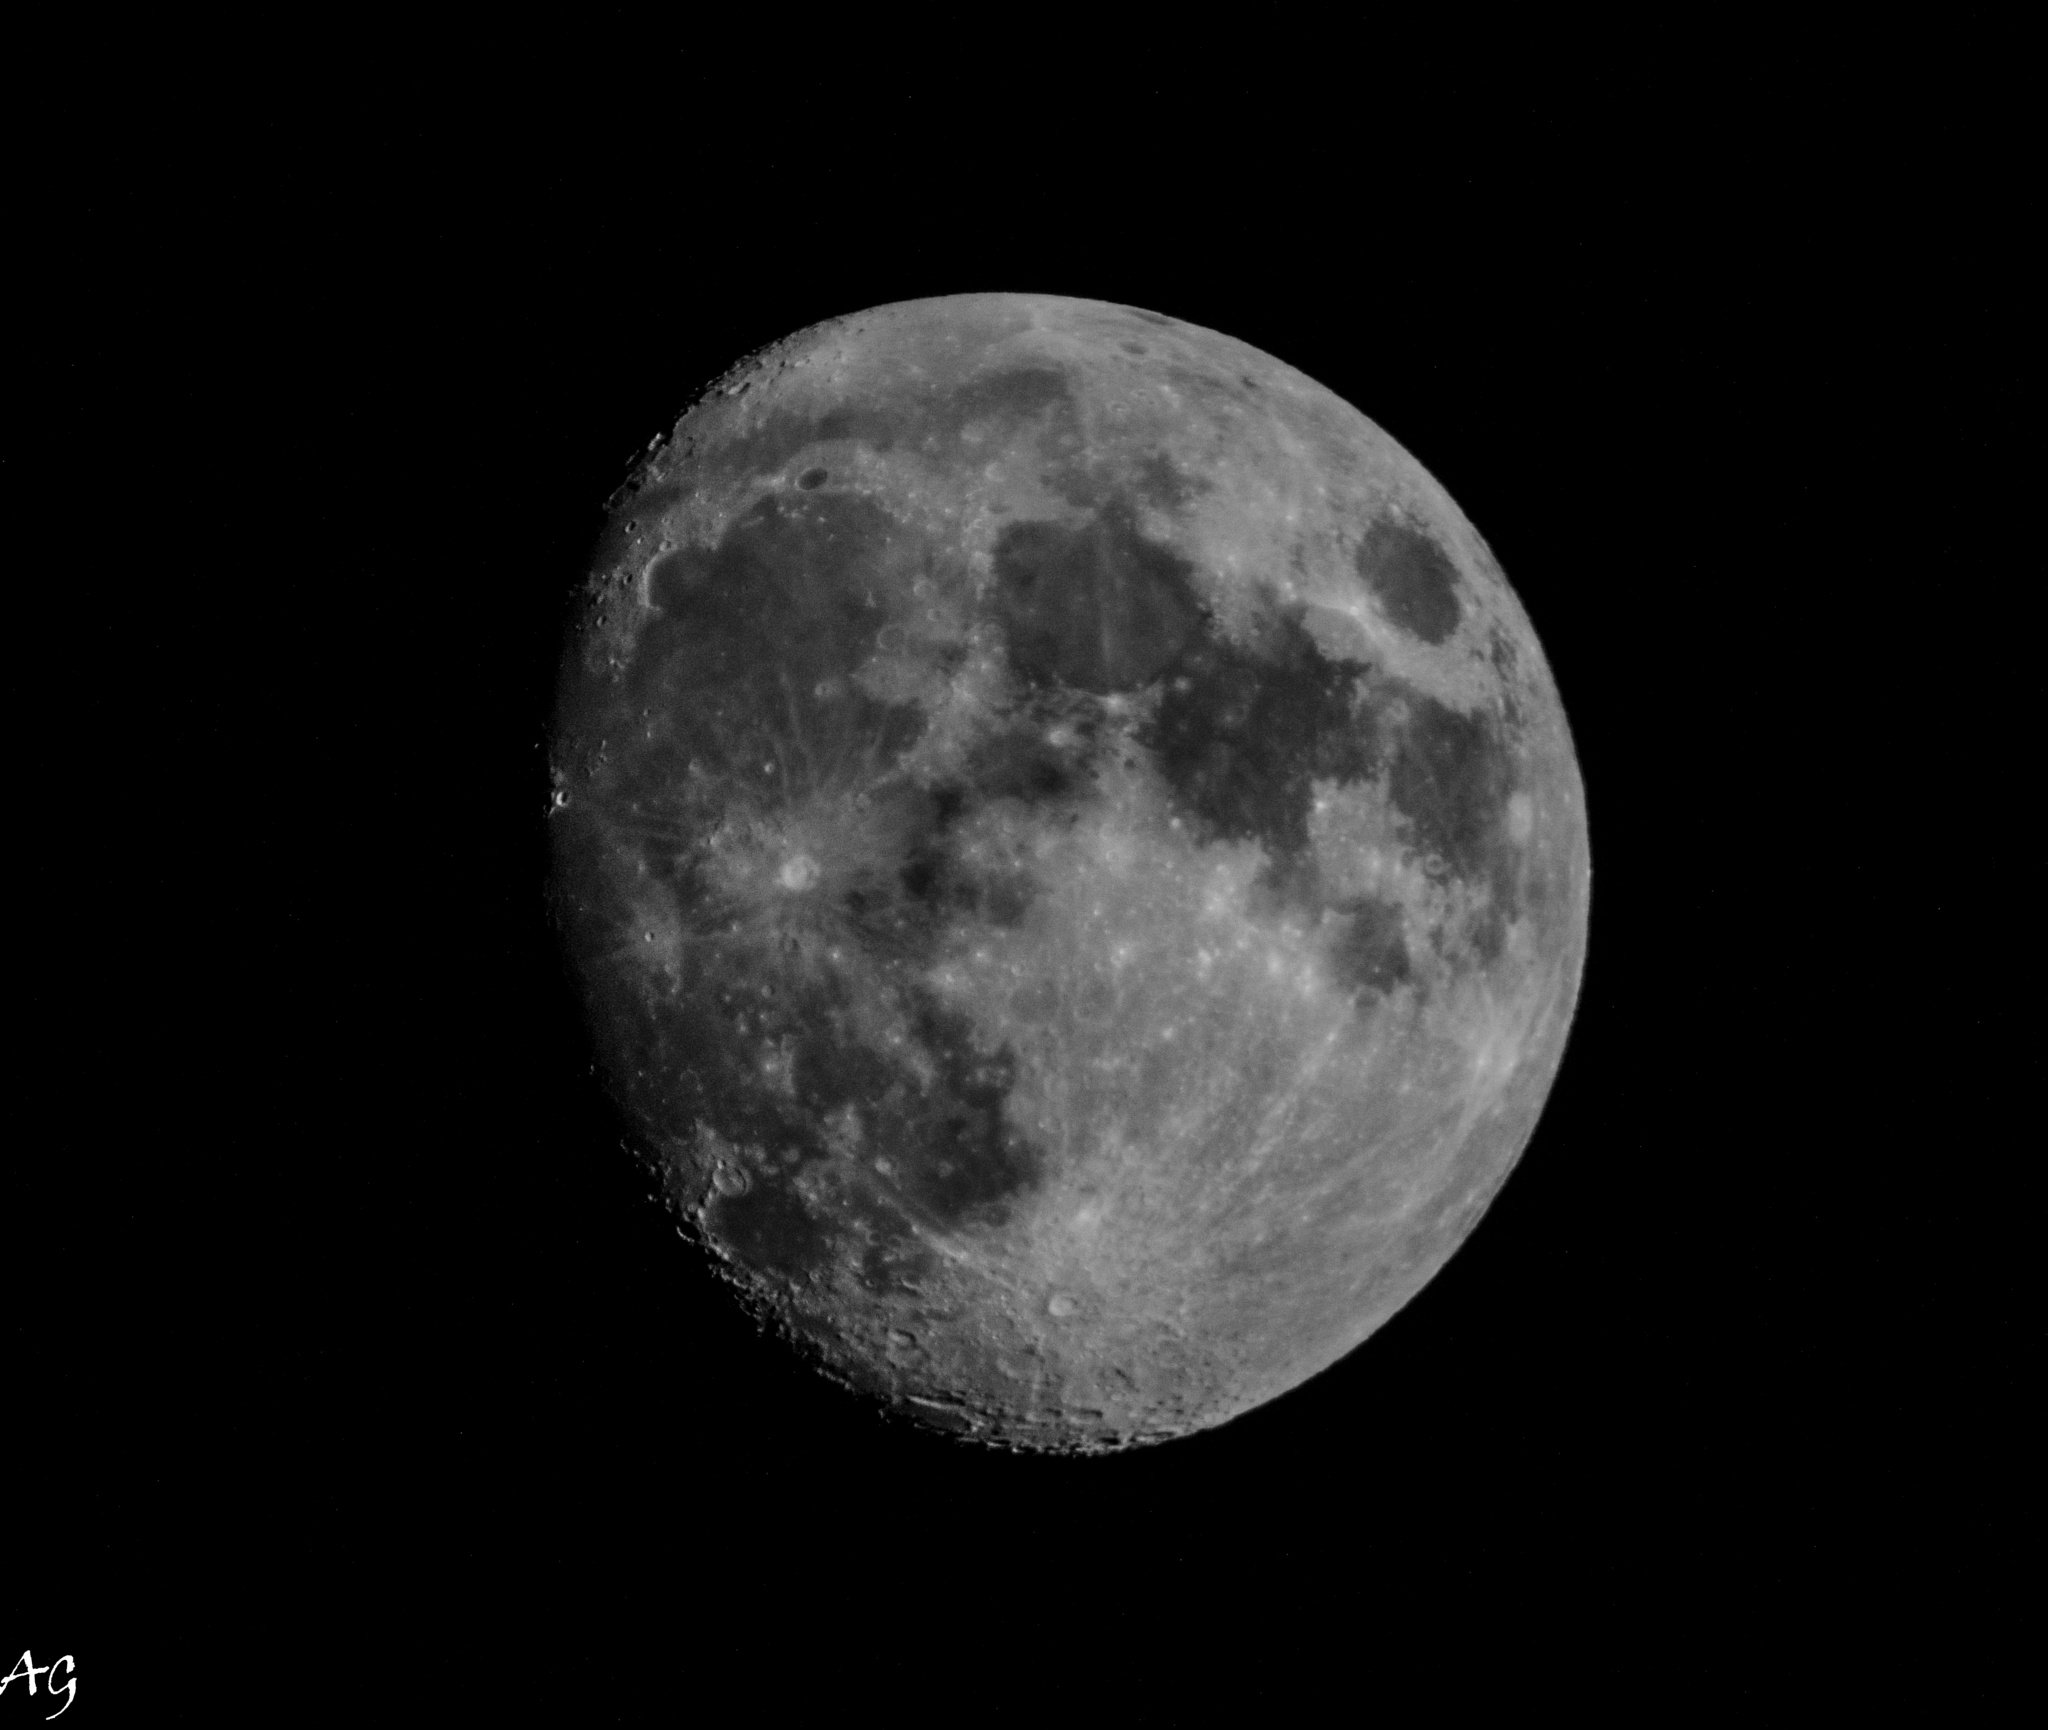 Moon by Andy Ghosh